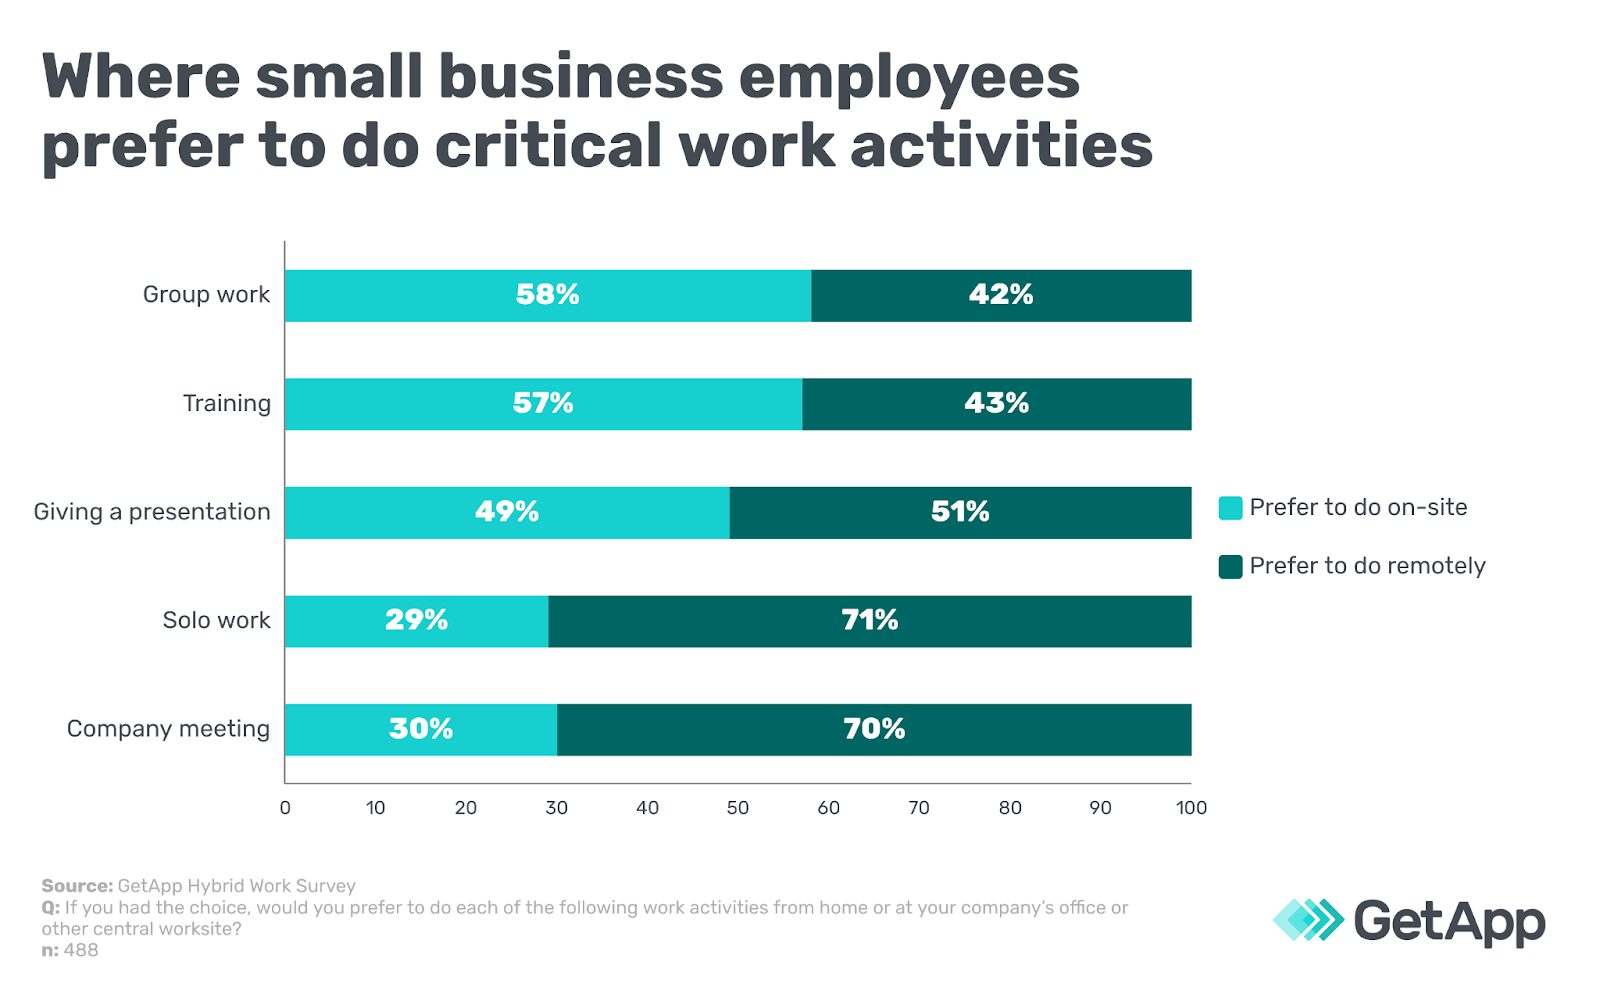 Where small business employees prefer to do critical work activities